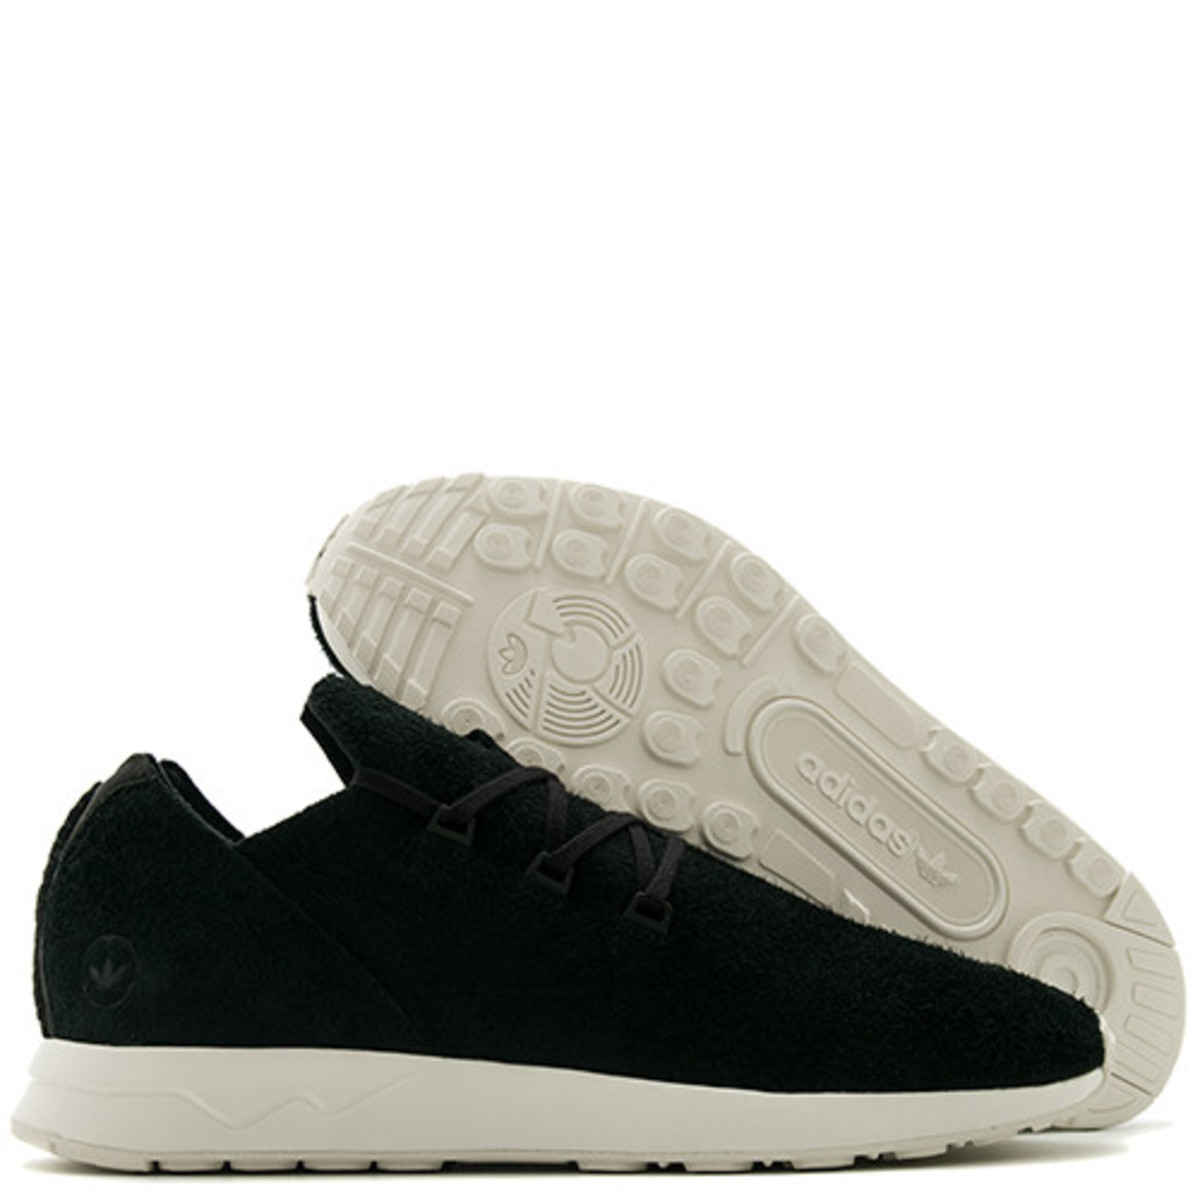 info for 38a86 50cee ADIDAS BY WINGS + HORNS ZX FLUX X LEATHER - BLACK